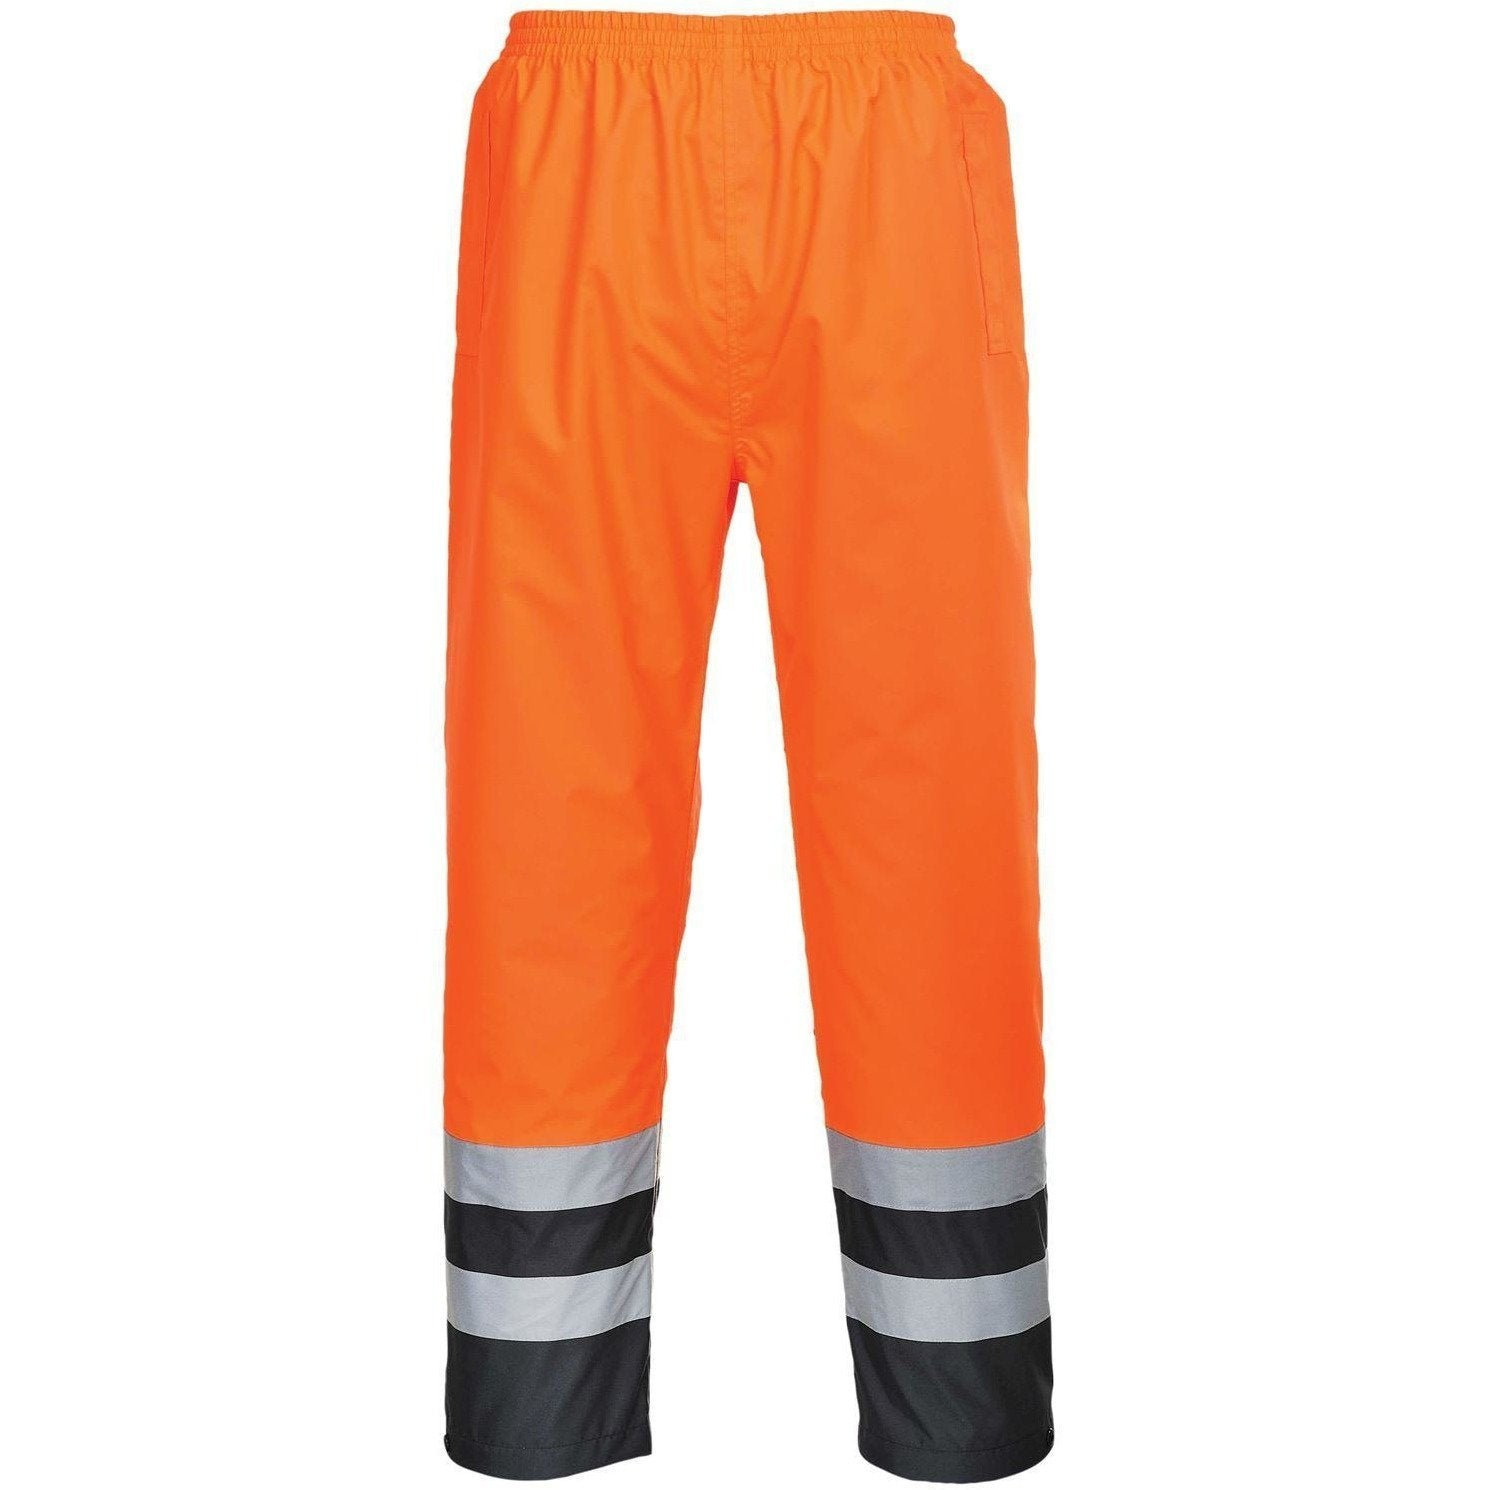 Portwest Hi-Vis Two Tone Traffic Trousers S486 - reid outdoors